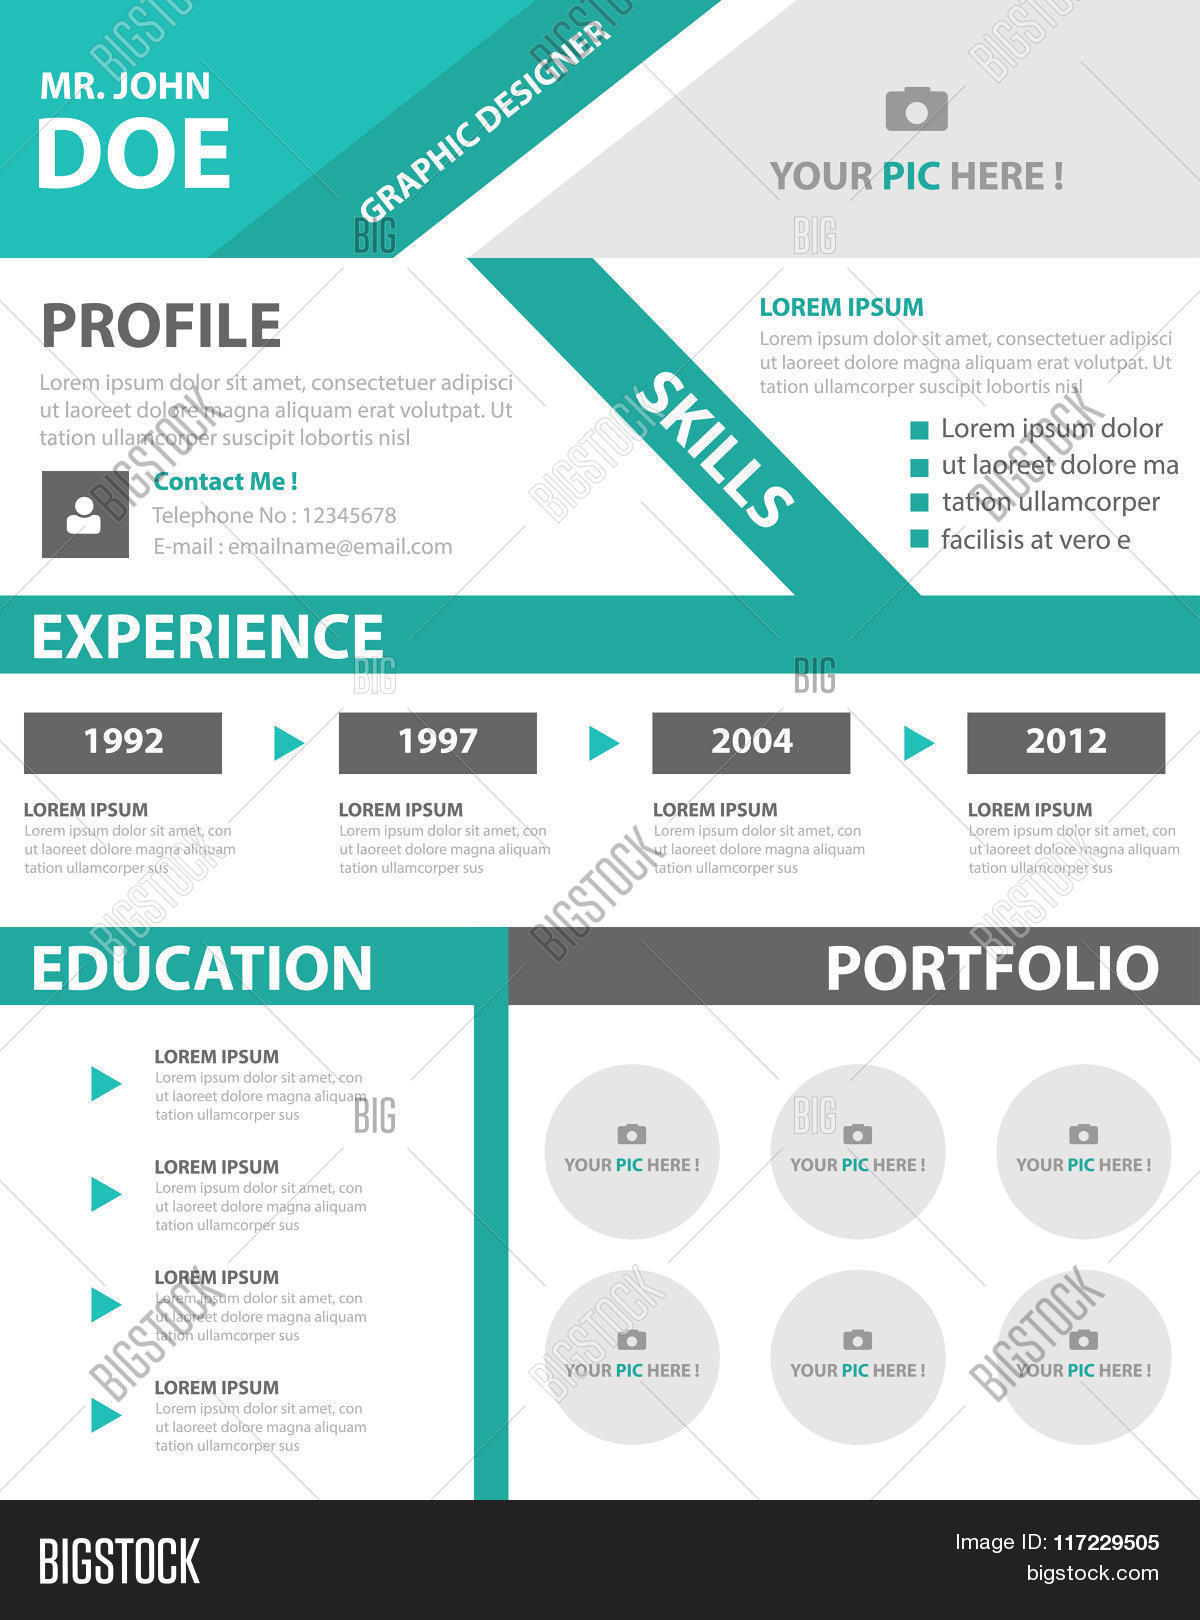 resume Flat Design Resume smart creative resume business profile cv vitae template layout flat design for job application advertising marketing